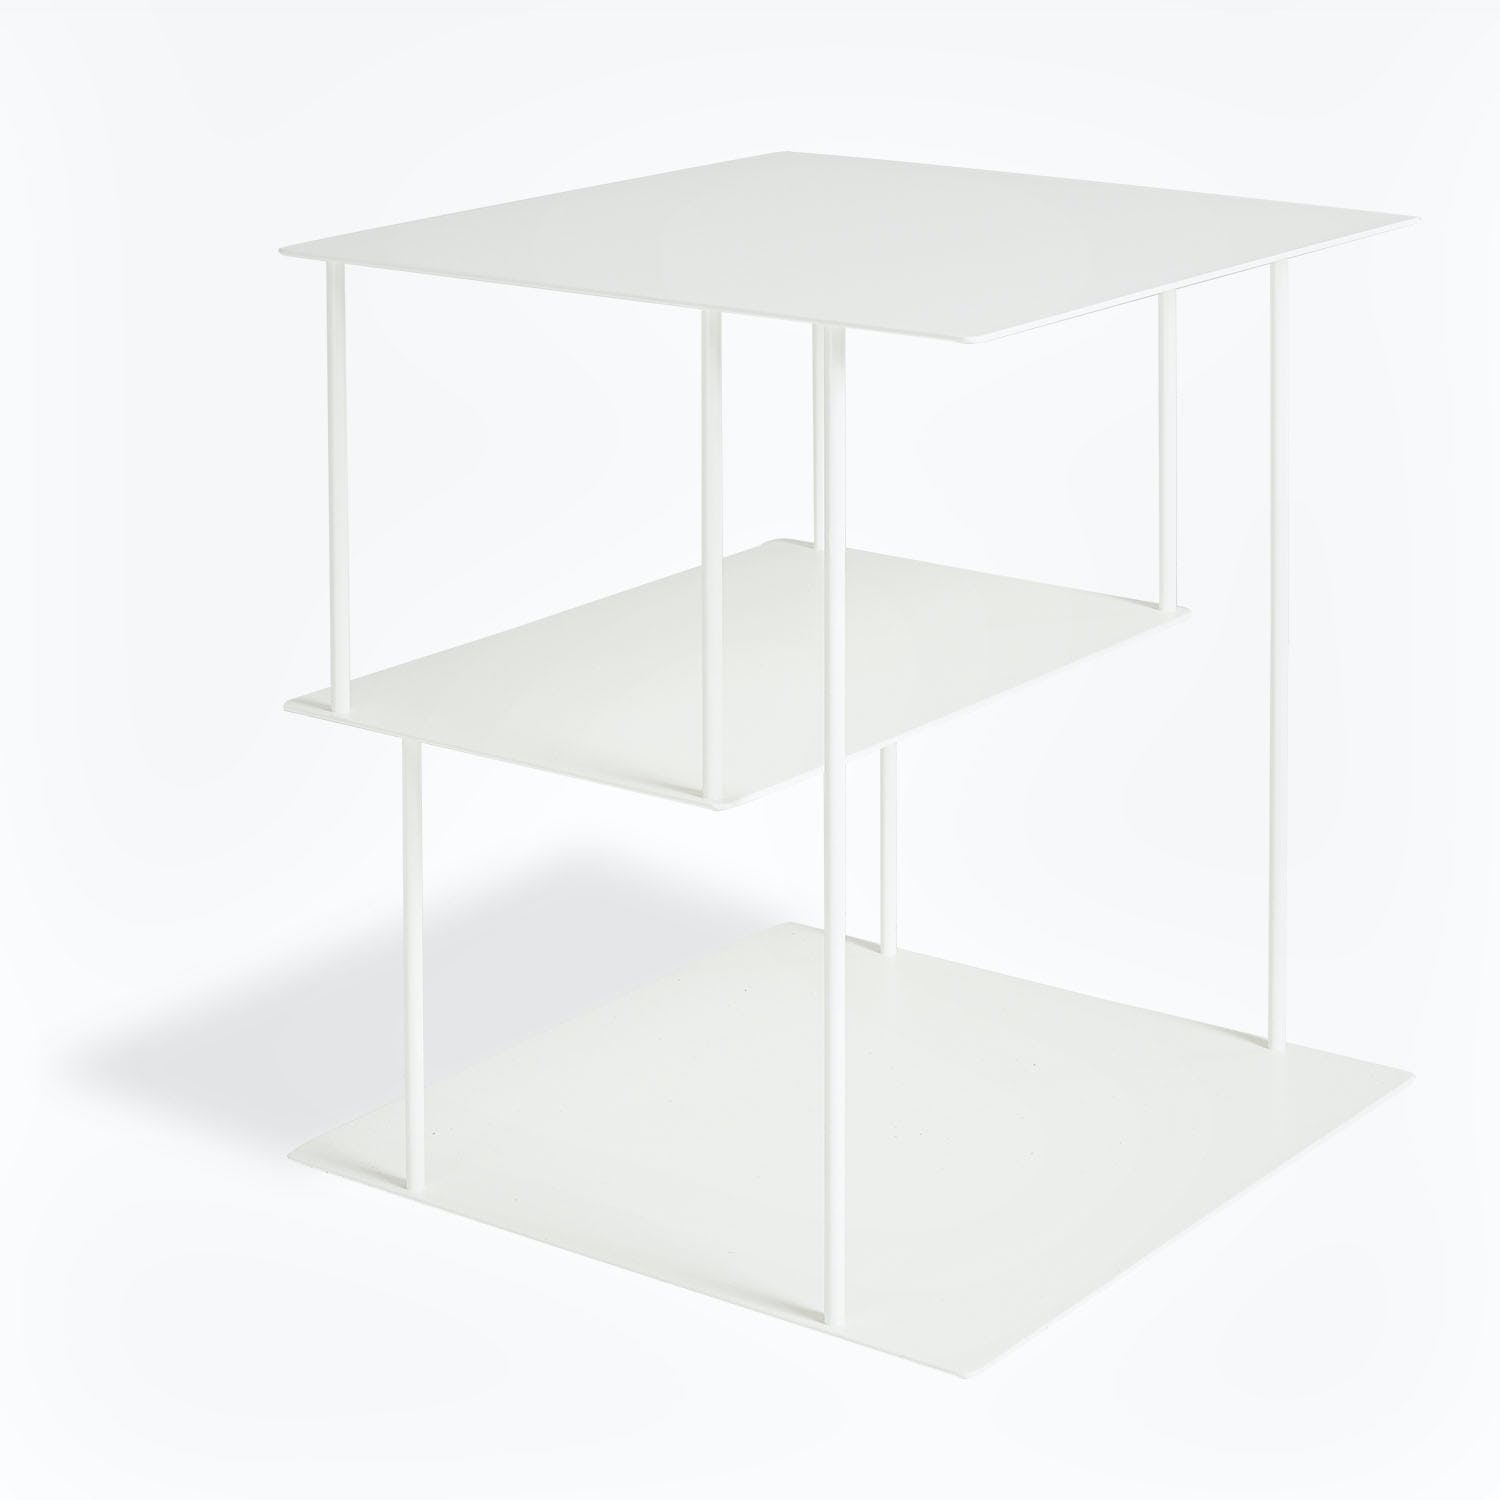 abcDNA Helix Steel Side Table White